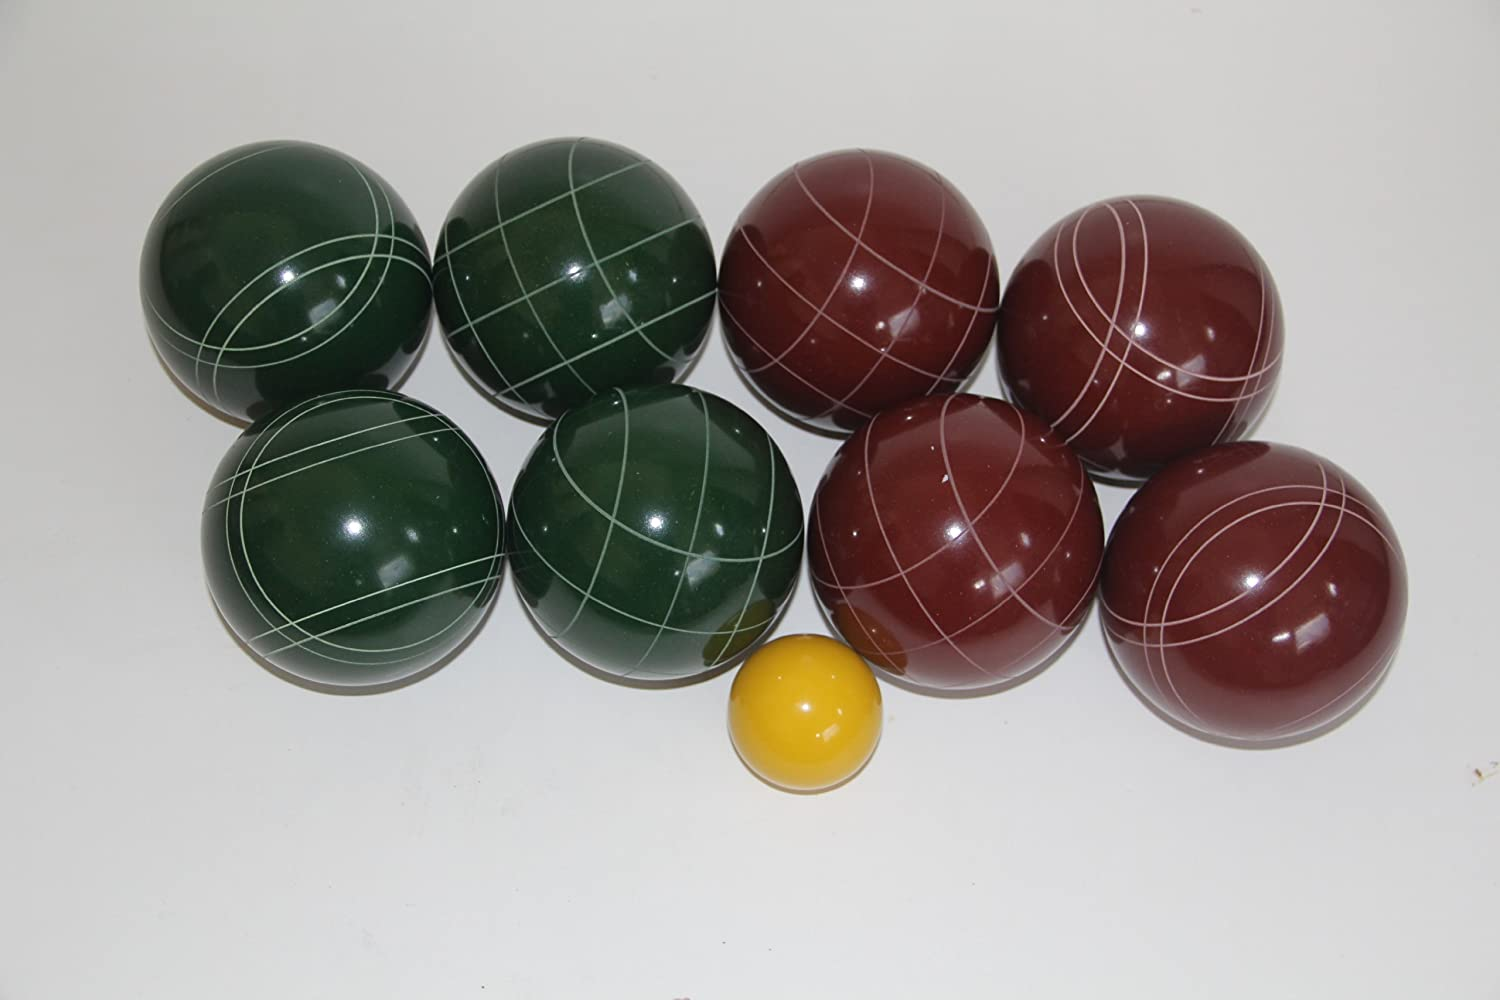 Premium Quality EPCO Tournament Bocce Set - 110mm Red and Green Bocce Balls -...